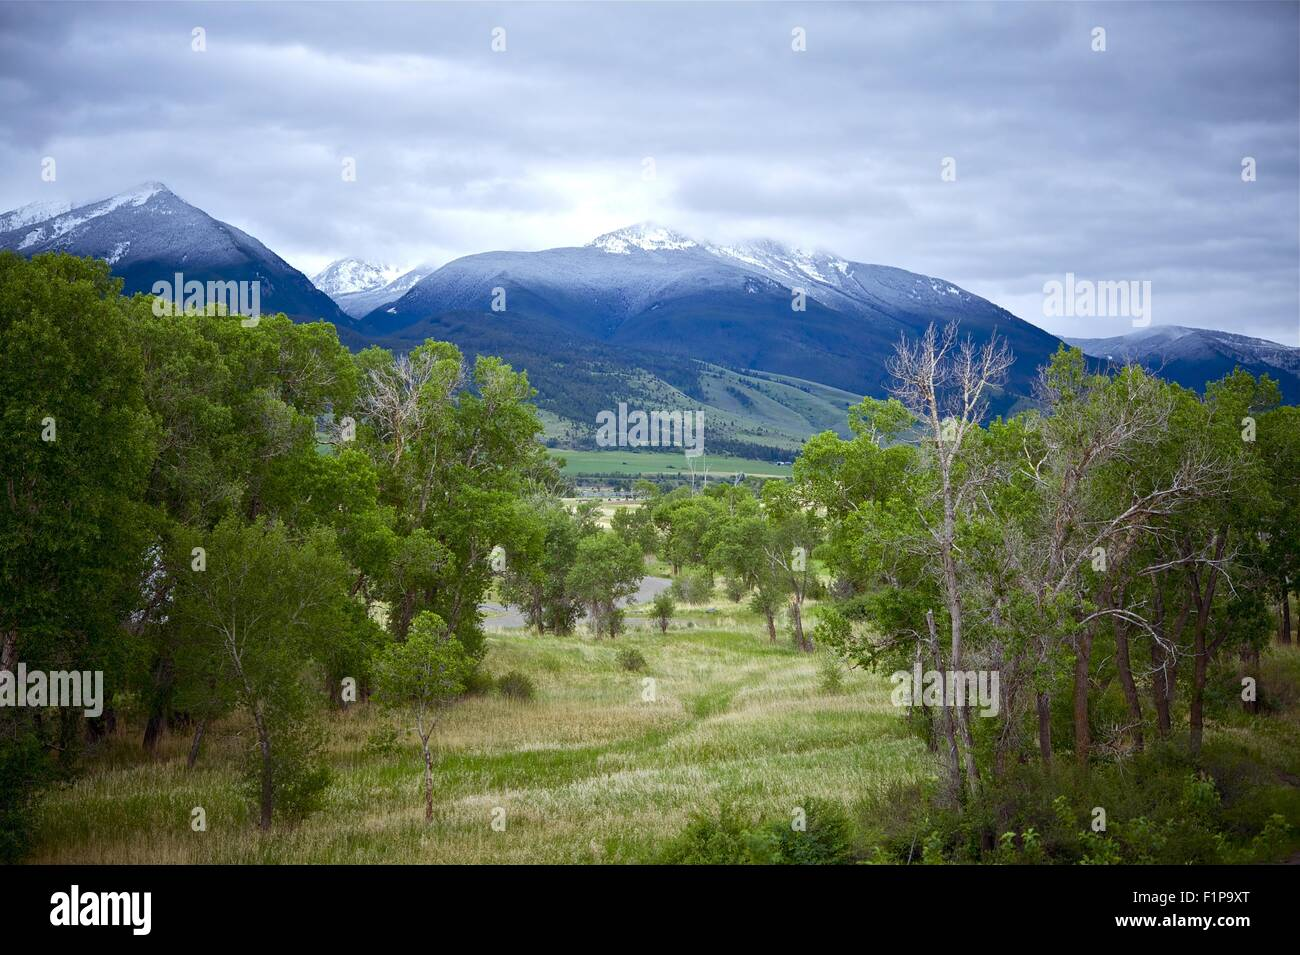 Livingston Montana Landscape. Early Summer - Snowy Peaks. Montana Photo Collection - Stock Image